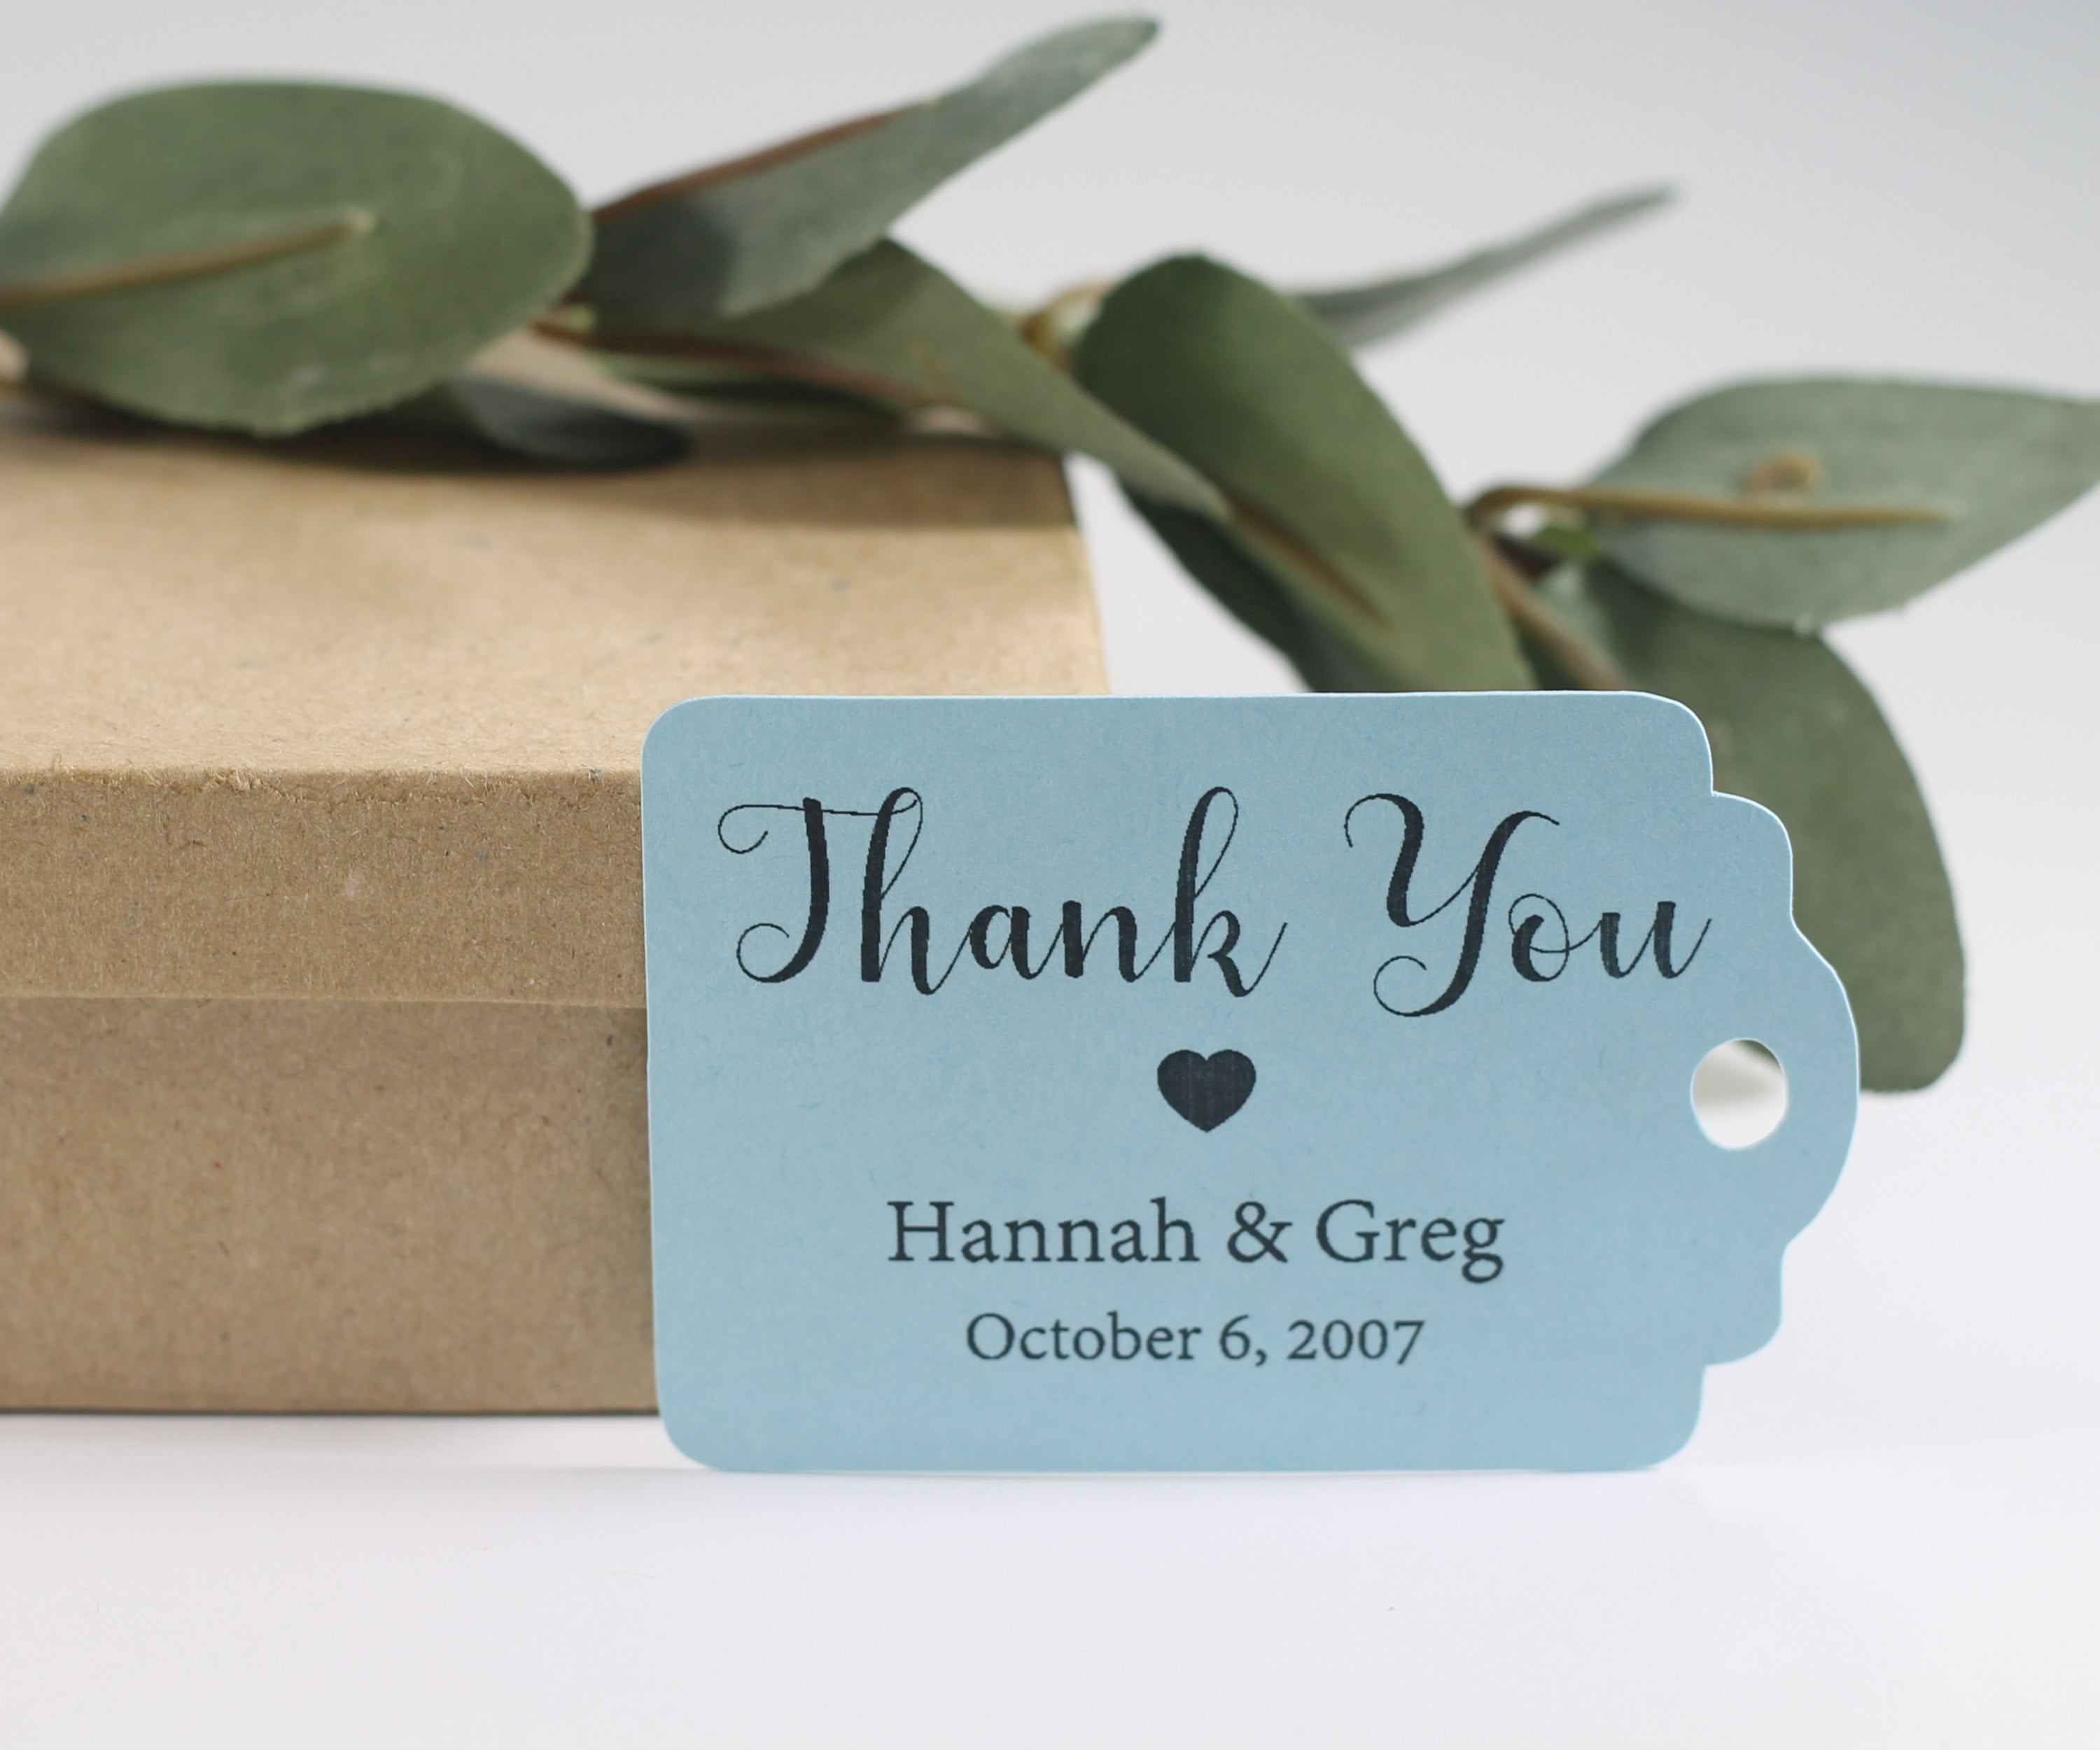 Personalized Wedding Tags - Light Blue Wedding Gift Tags with Personalizedd Text - 20pc-Wedding Tags-The Paper Medley